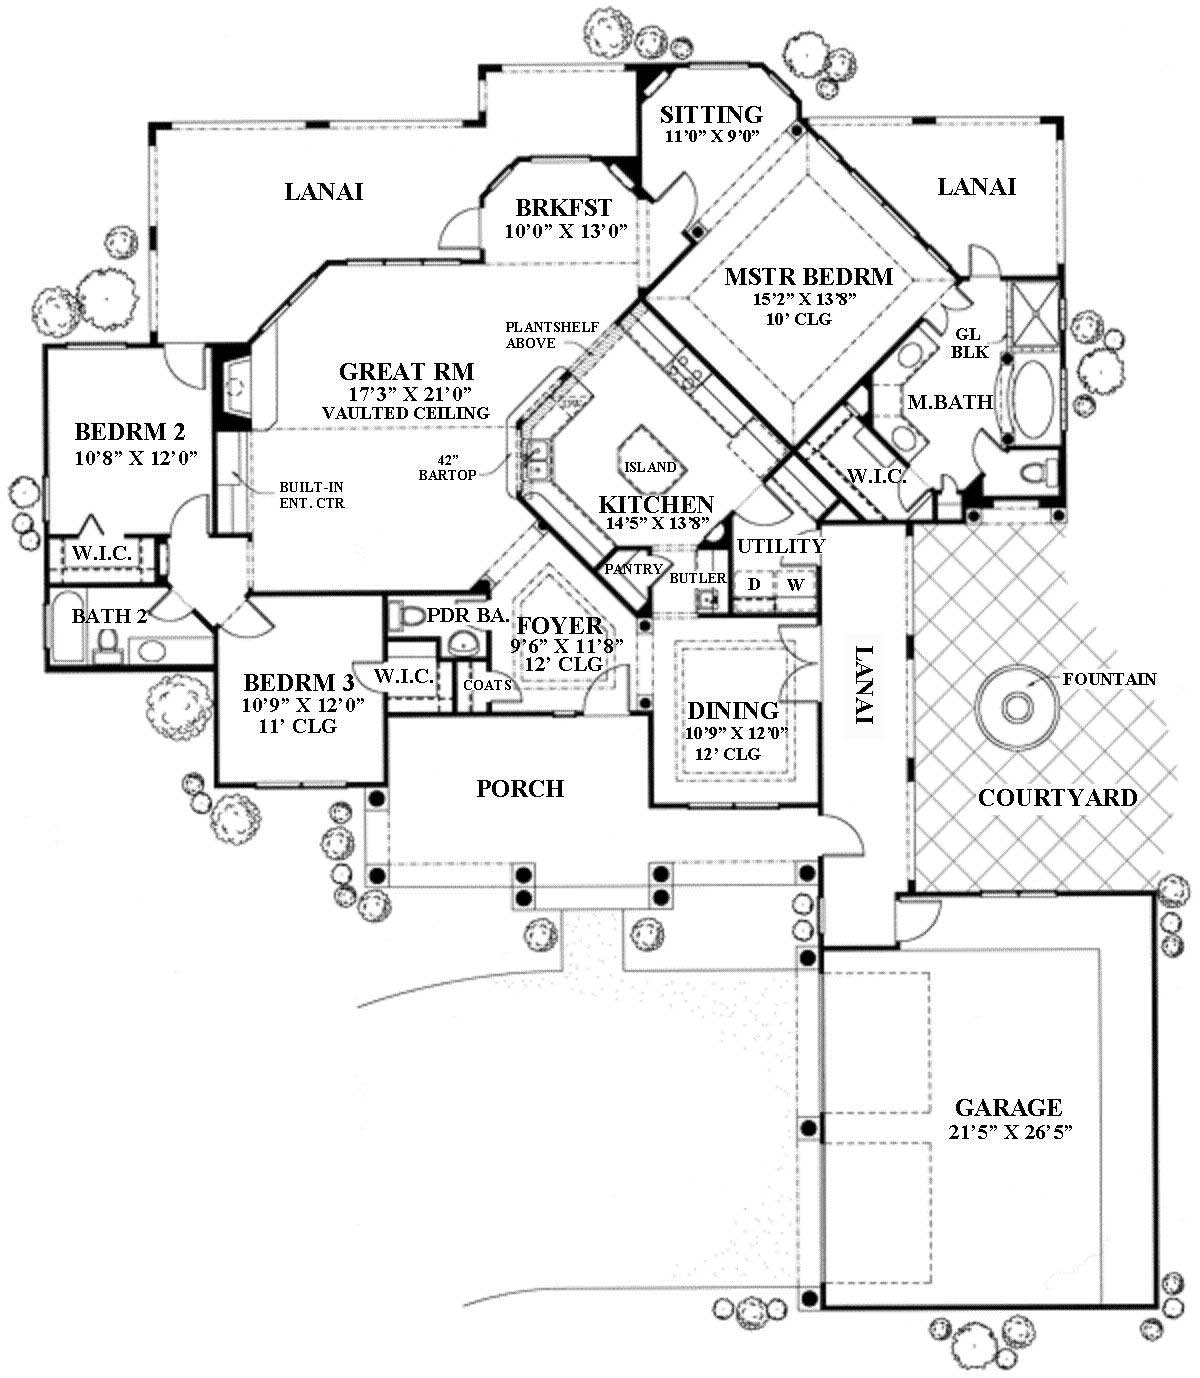 3 bedrm 1988 sq ft southwest house plan 136 1018 for 7000 sq ft house plans